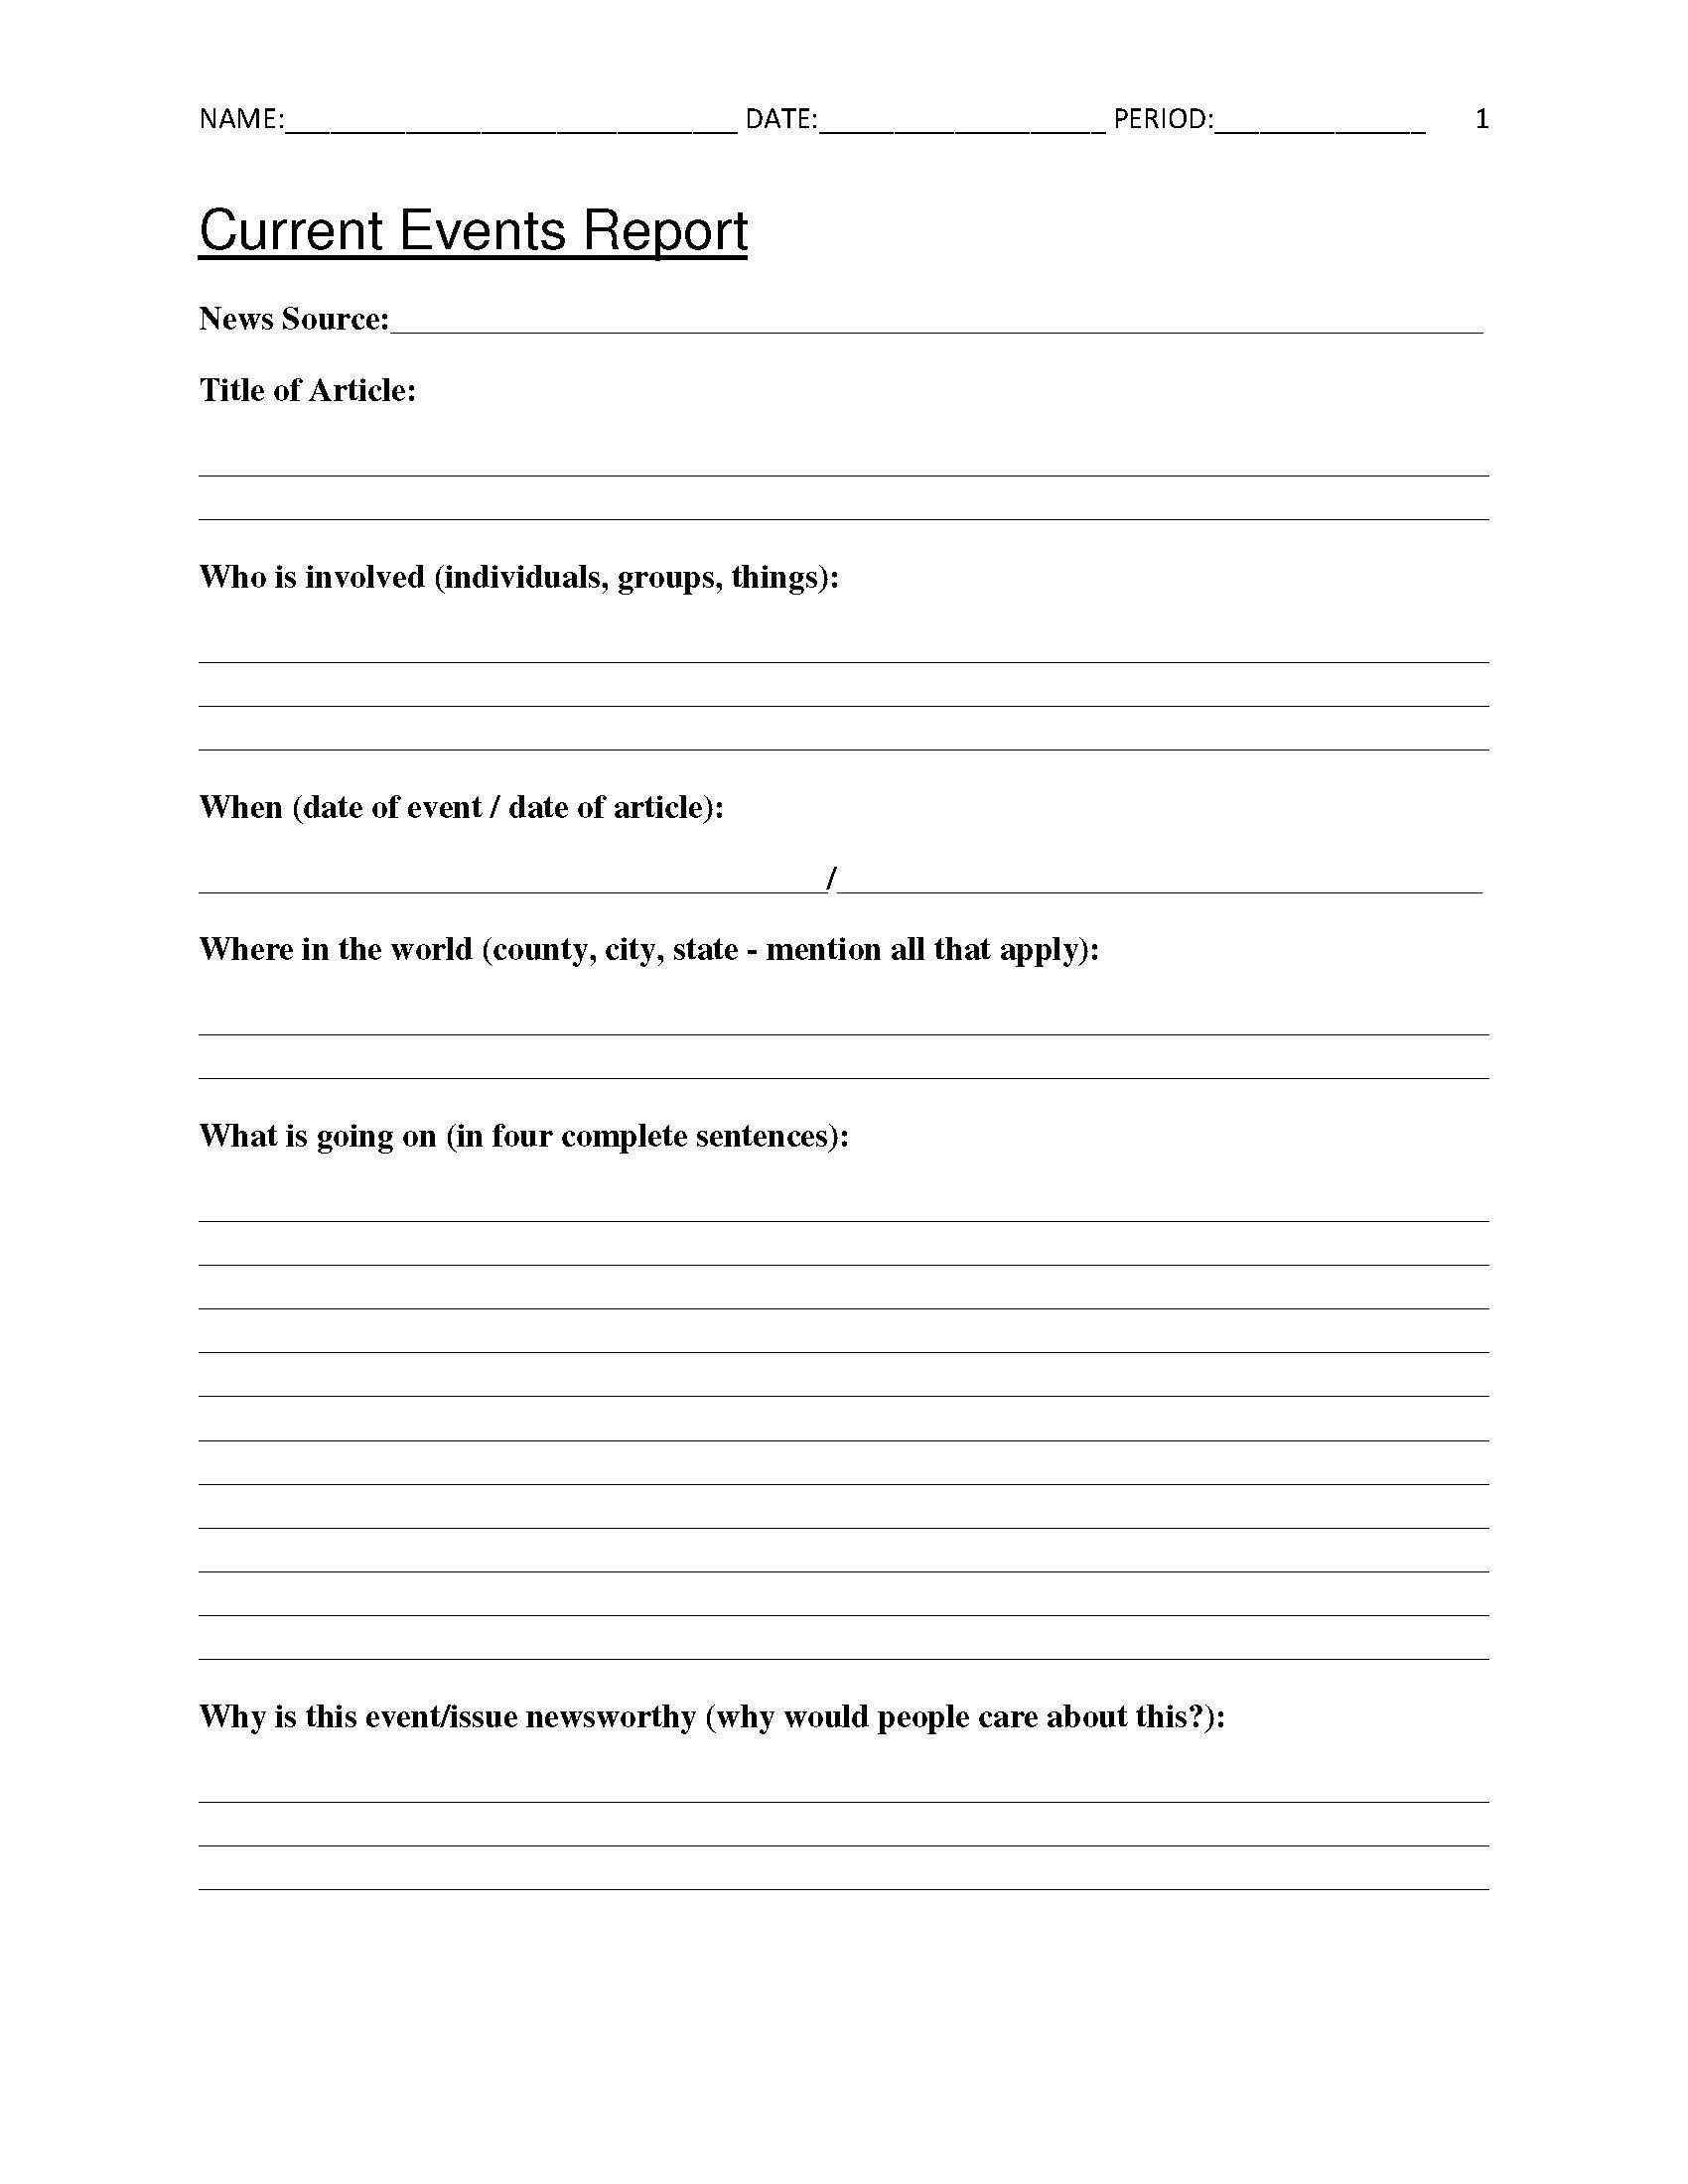 social media madness worksheet fourth printable current events report worksheet for classroom teachers